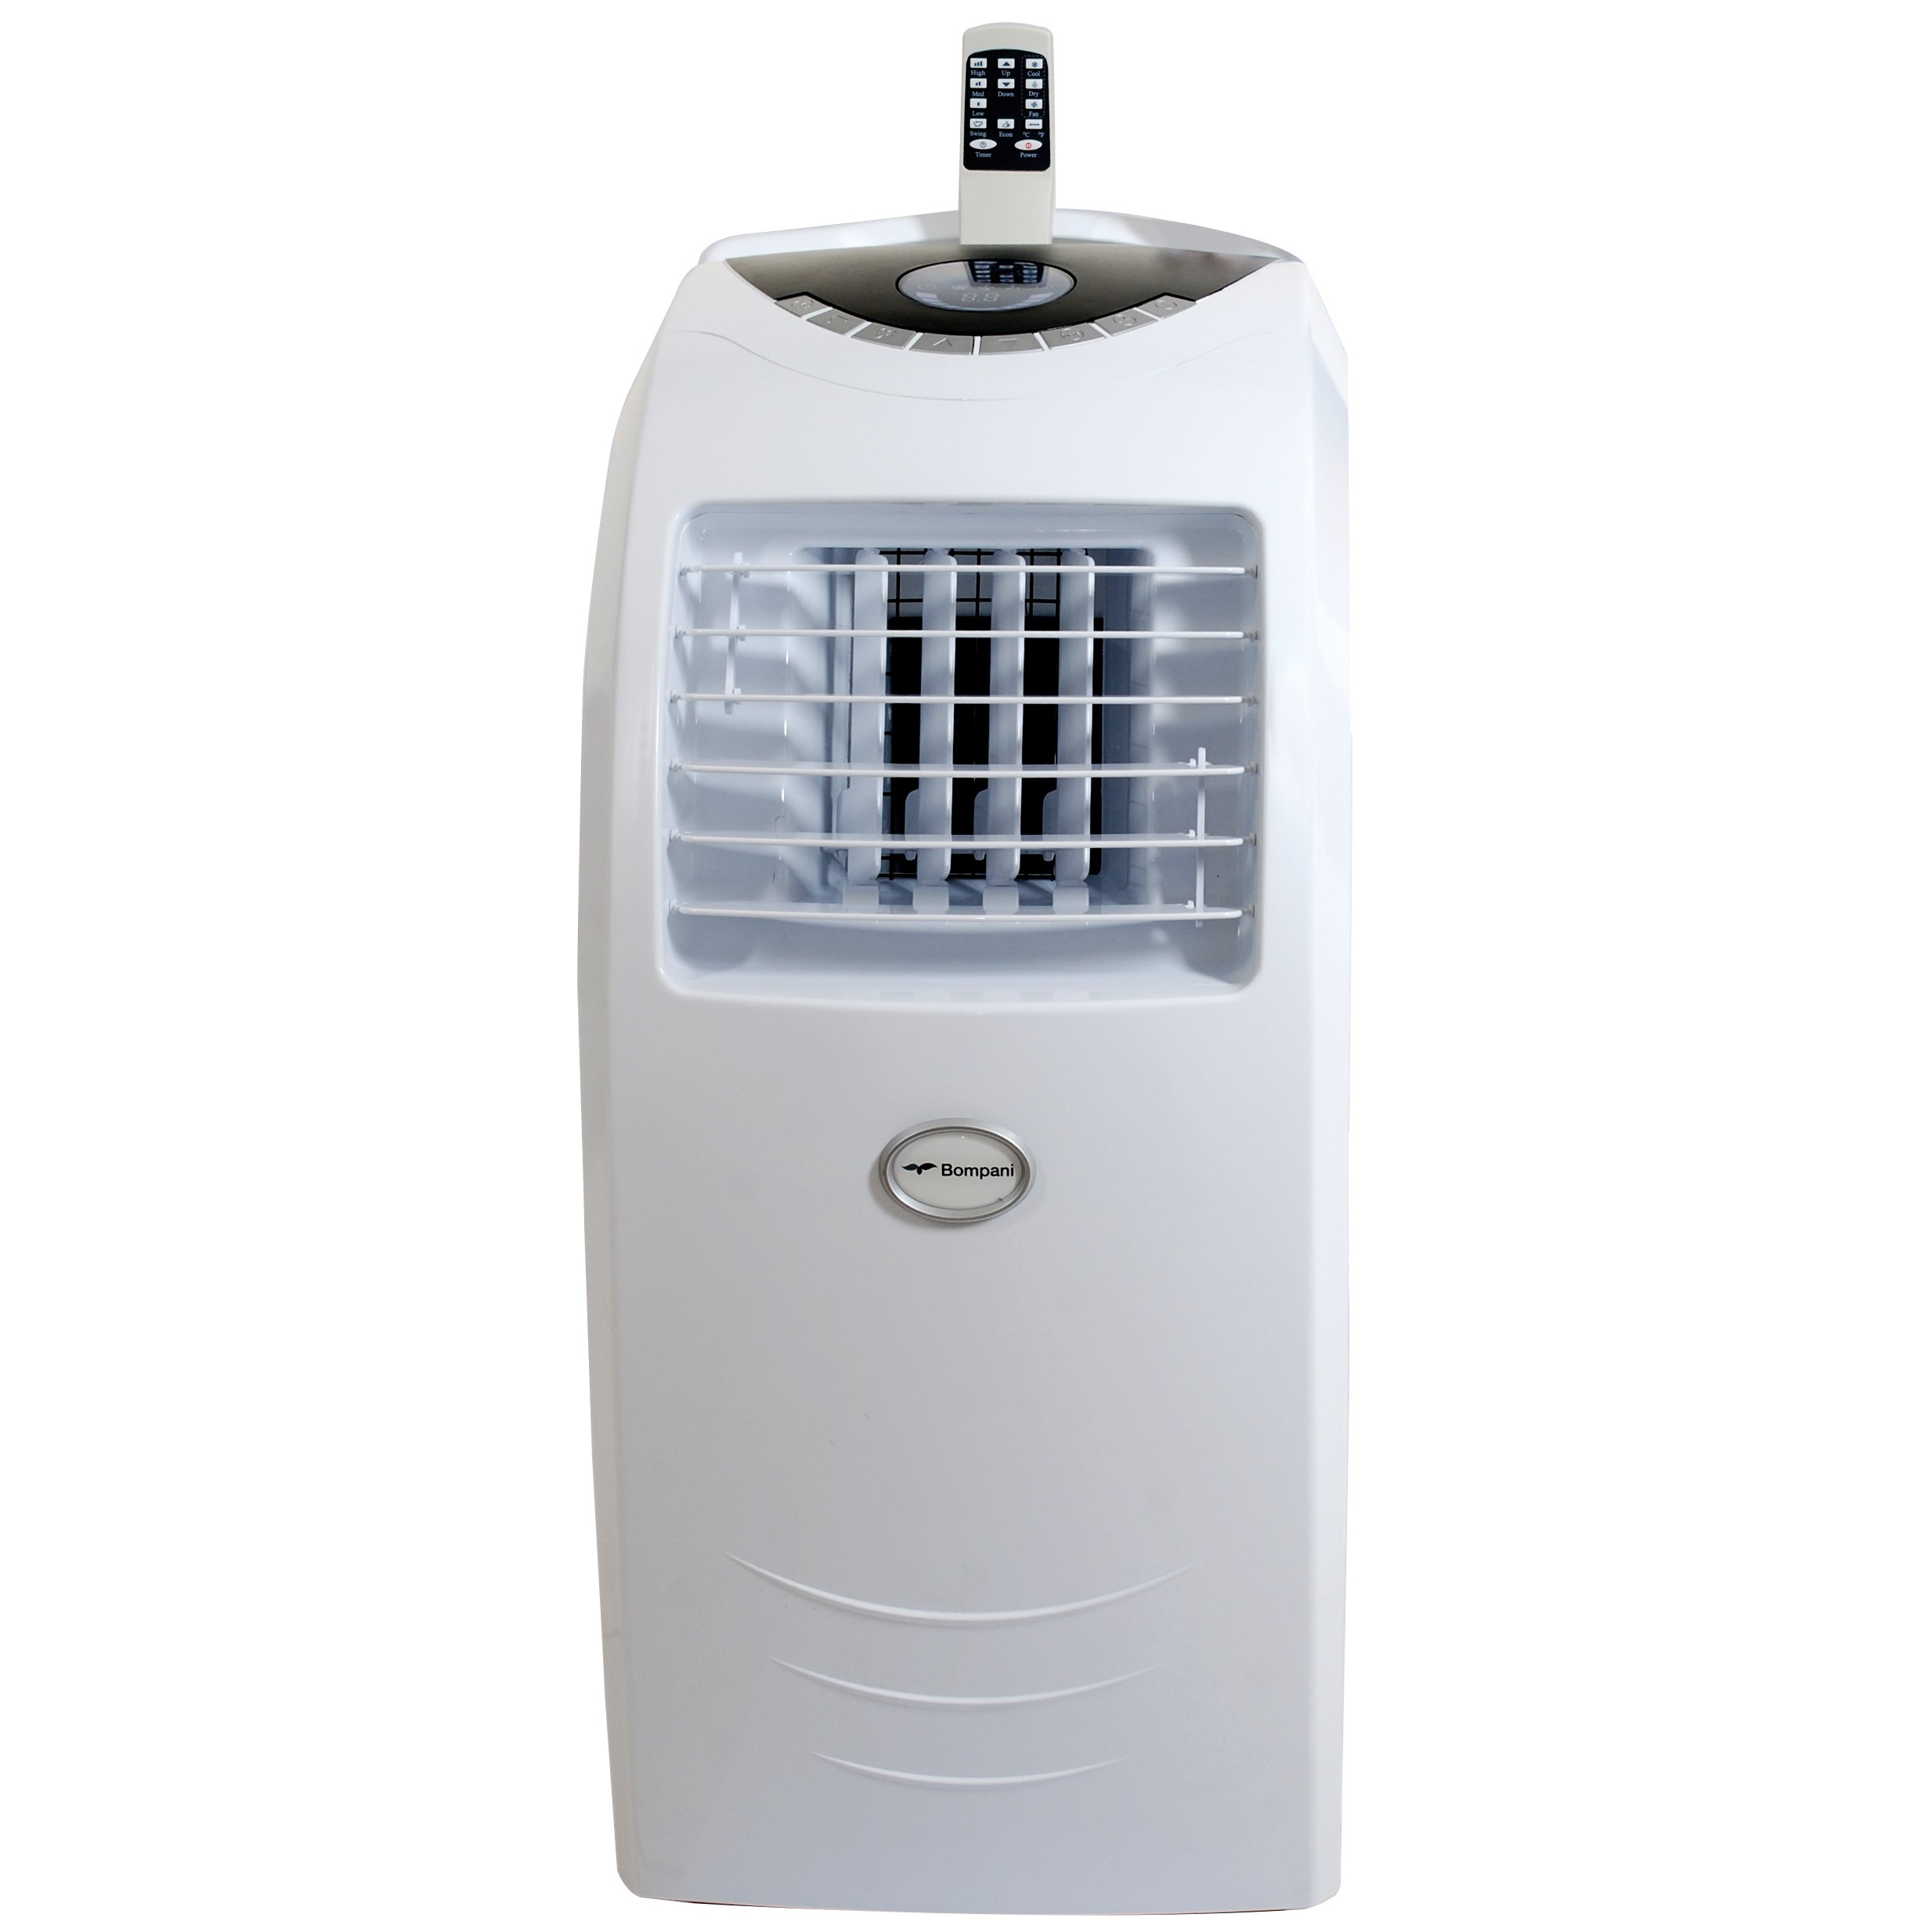 Frigidaire Portable Air Conditioner 1 Ton FPOH12GESW2 Price